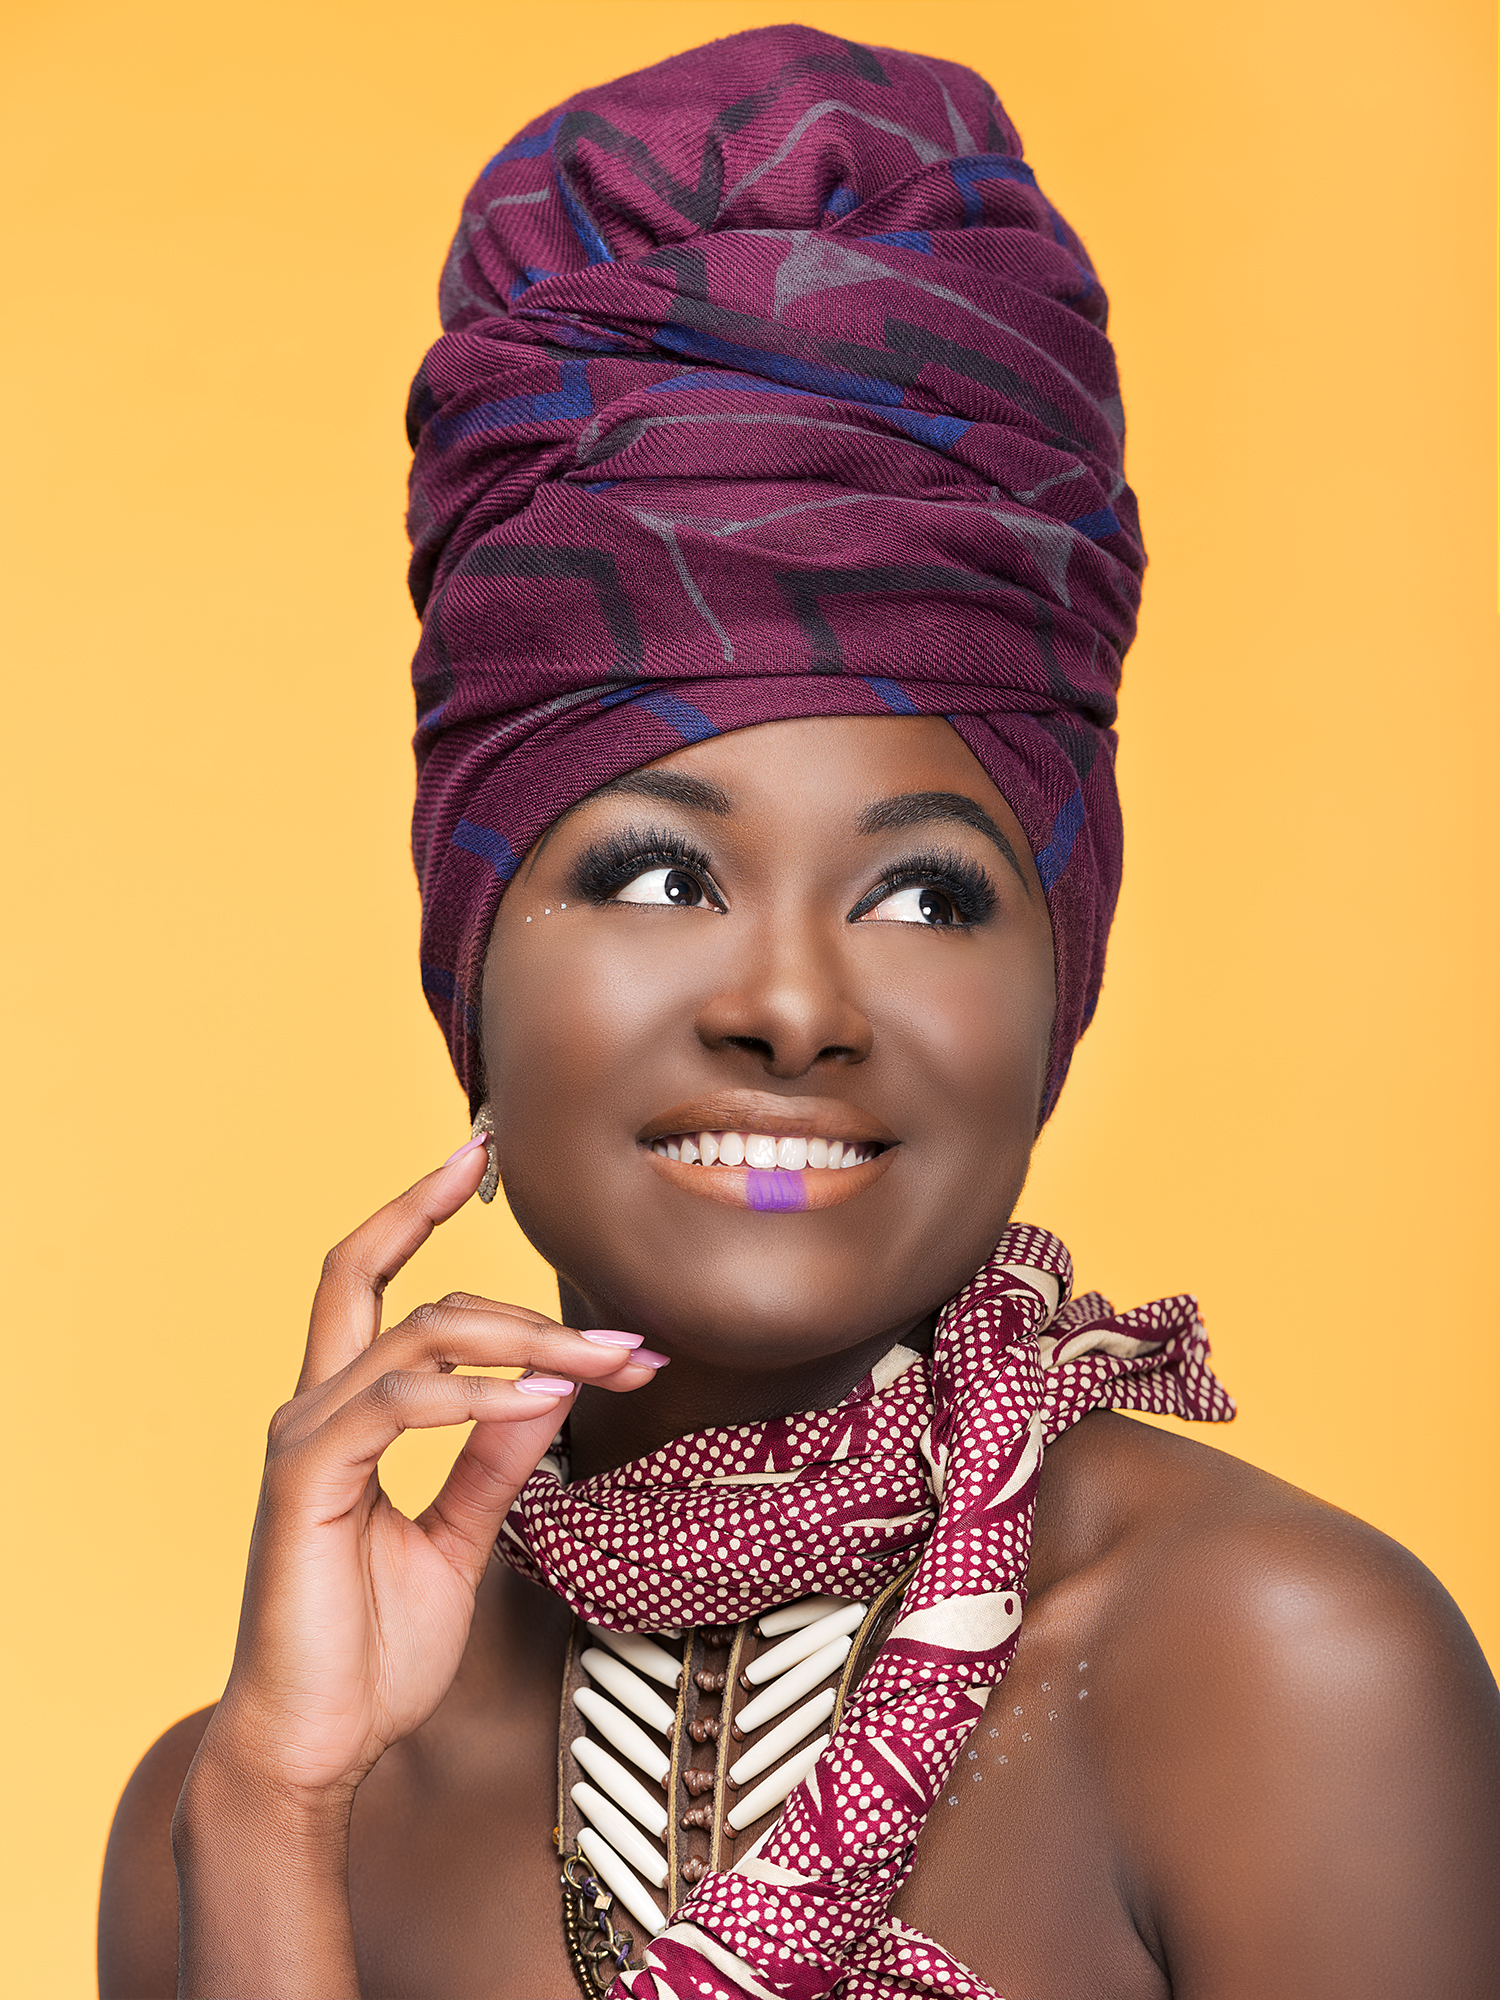 OliviaJames_CBP_HeadWrap_Yellow_Web.jpg